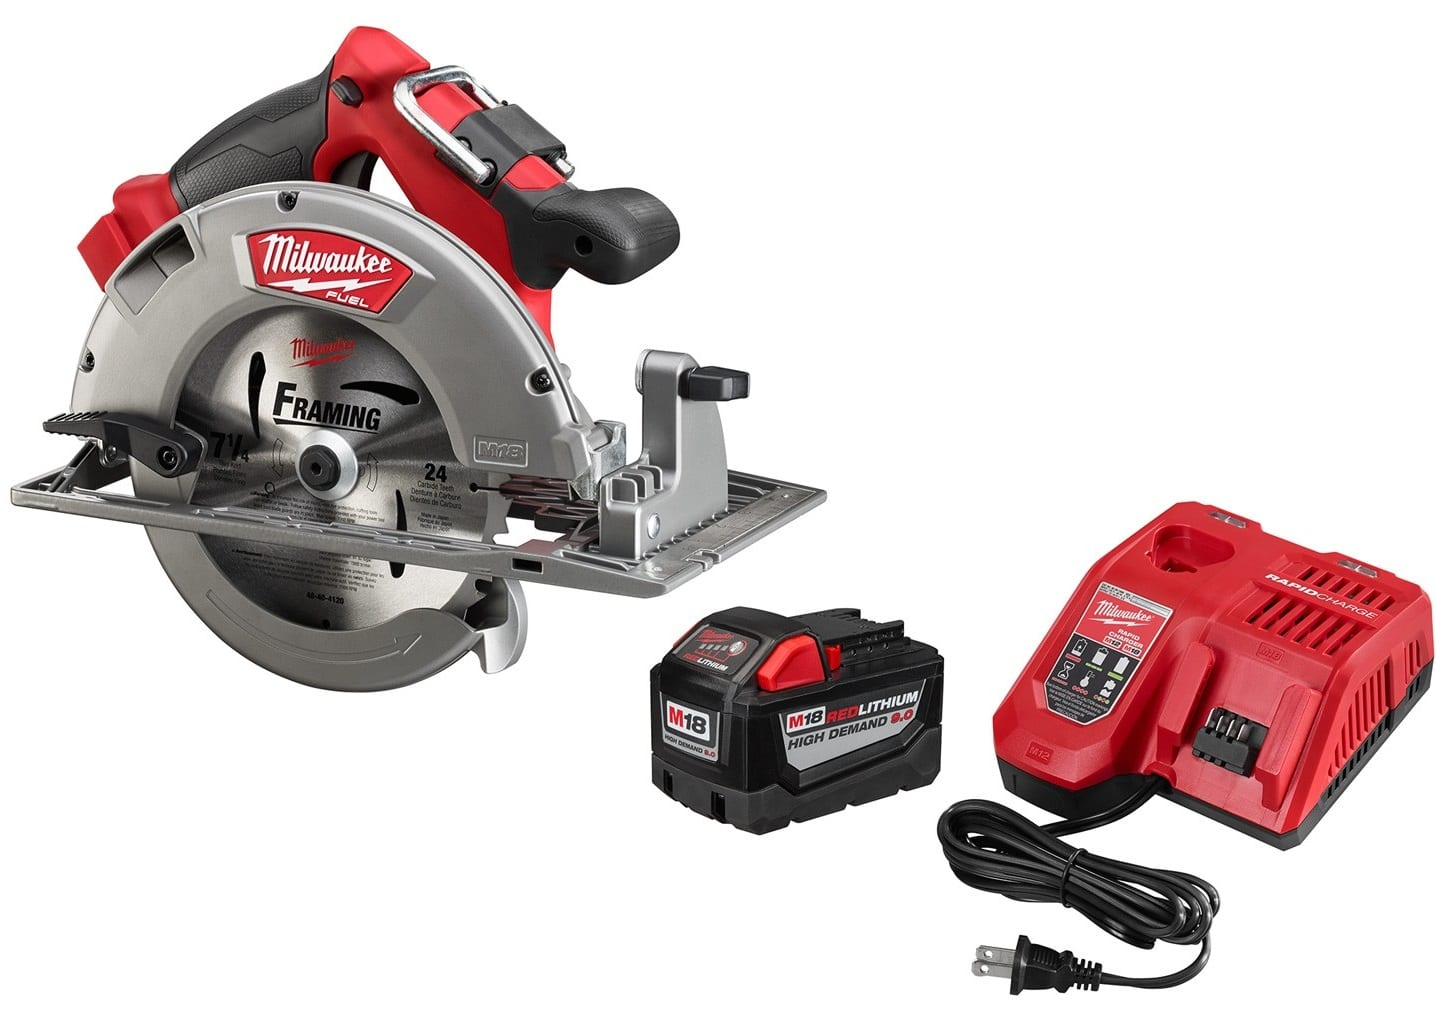 Milwaukee fuel circular saw or fuel sawzall 90 ah high demand milwaukee fuel circular saw or fuel sawzall 90 ah high demand battery and charger 24900 greentooth Image collections